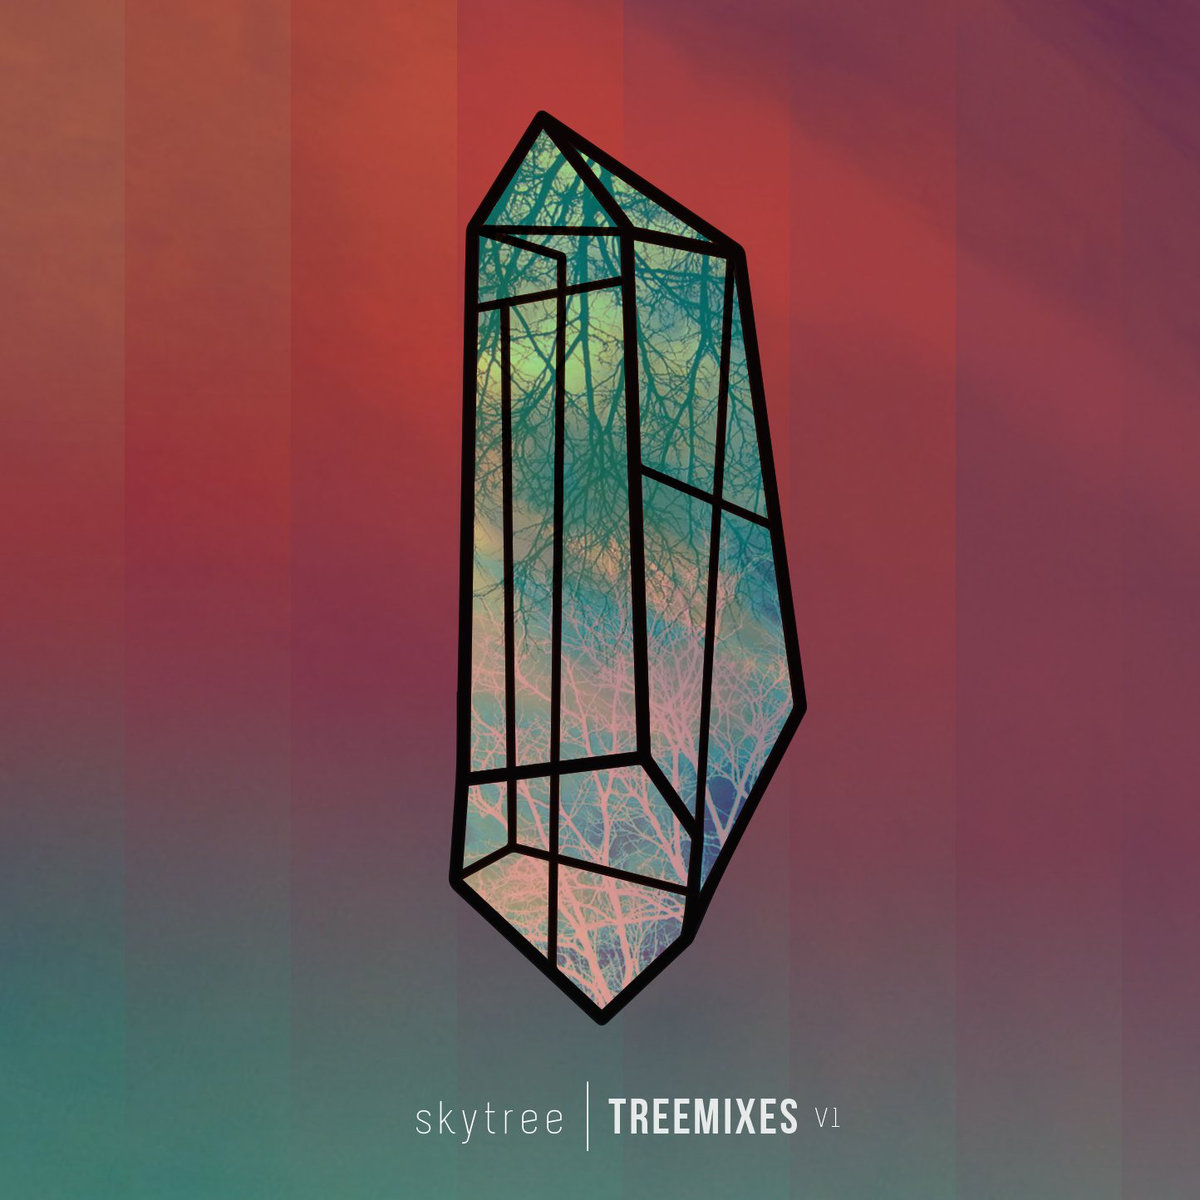 Skytree - Neverending World (Mikey Likes iT dub remix) @ 'Treemixes V1' album (Austin)